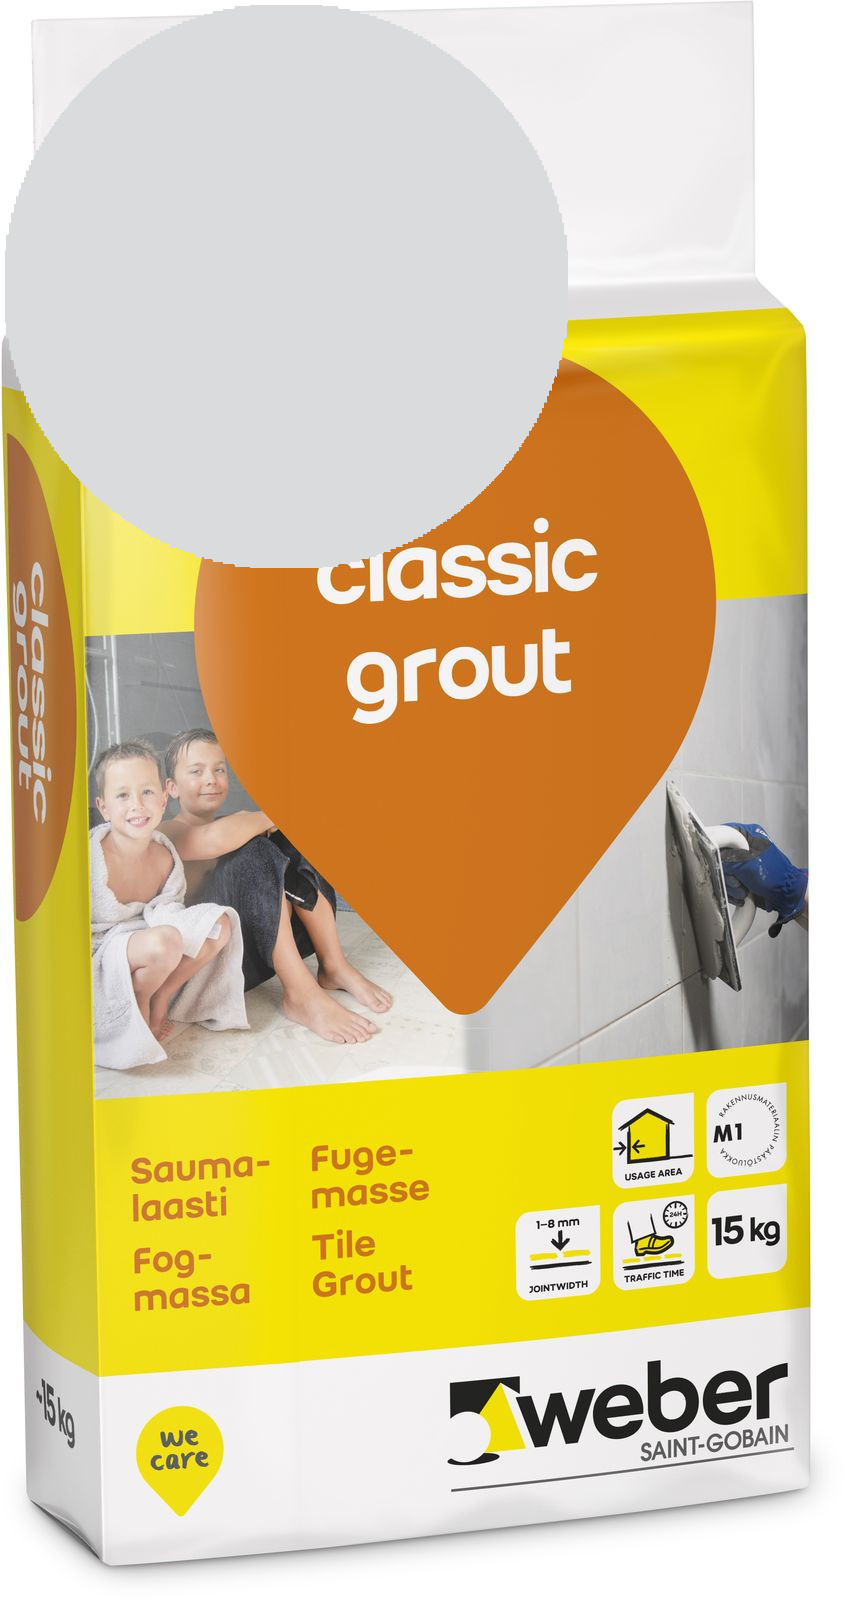 Saumalaasti Weber classic grout 13 Silver grey 15 kg